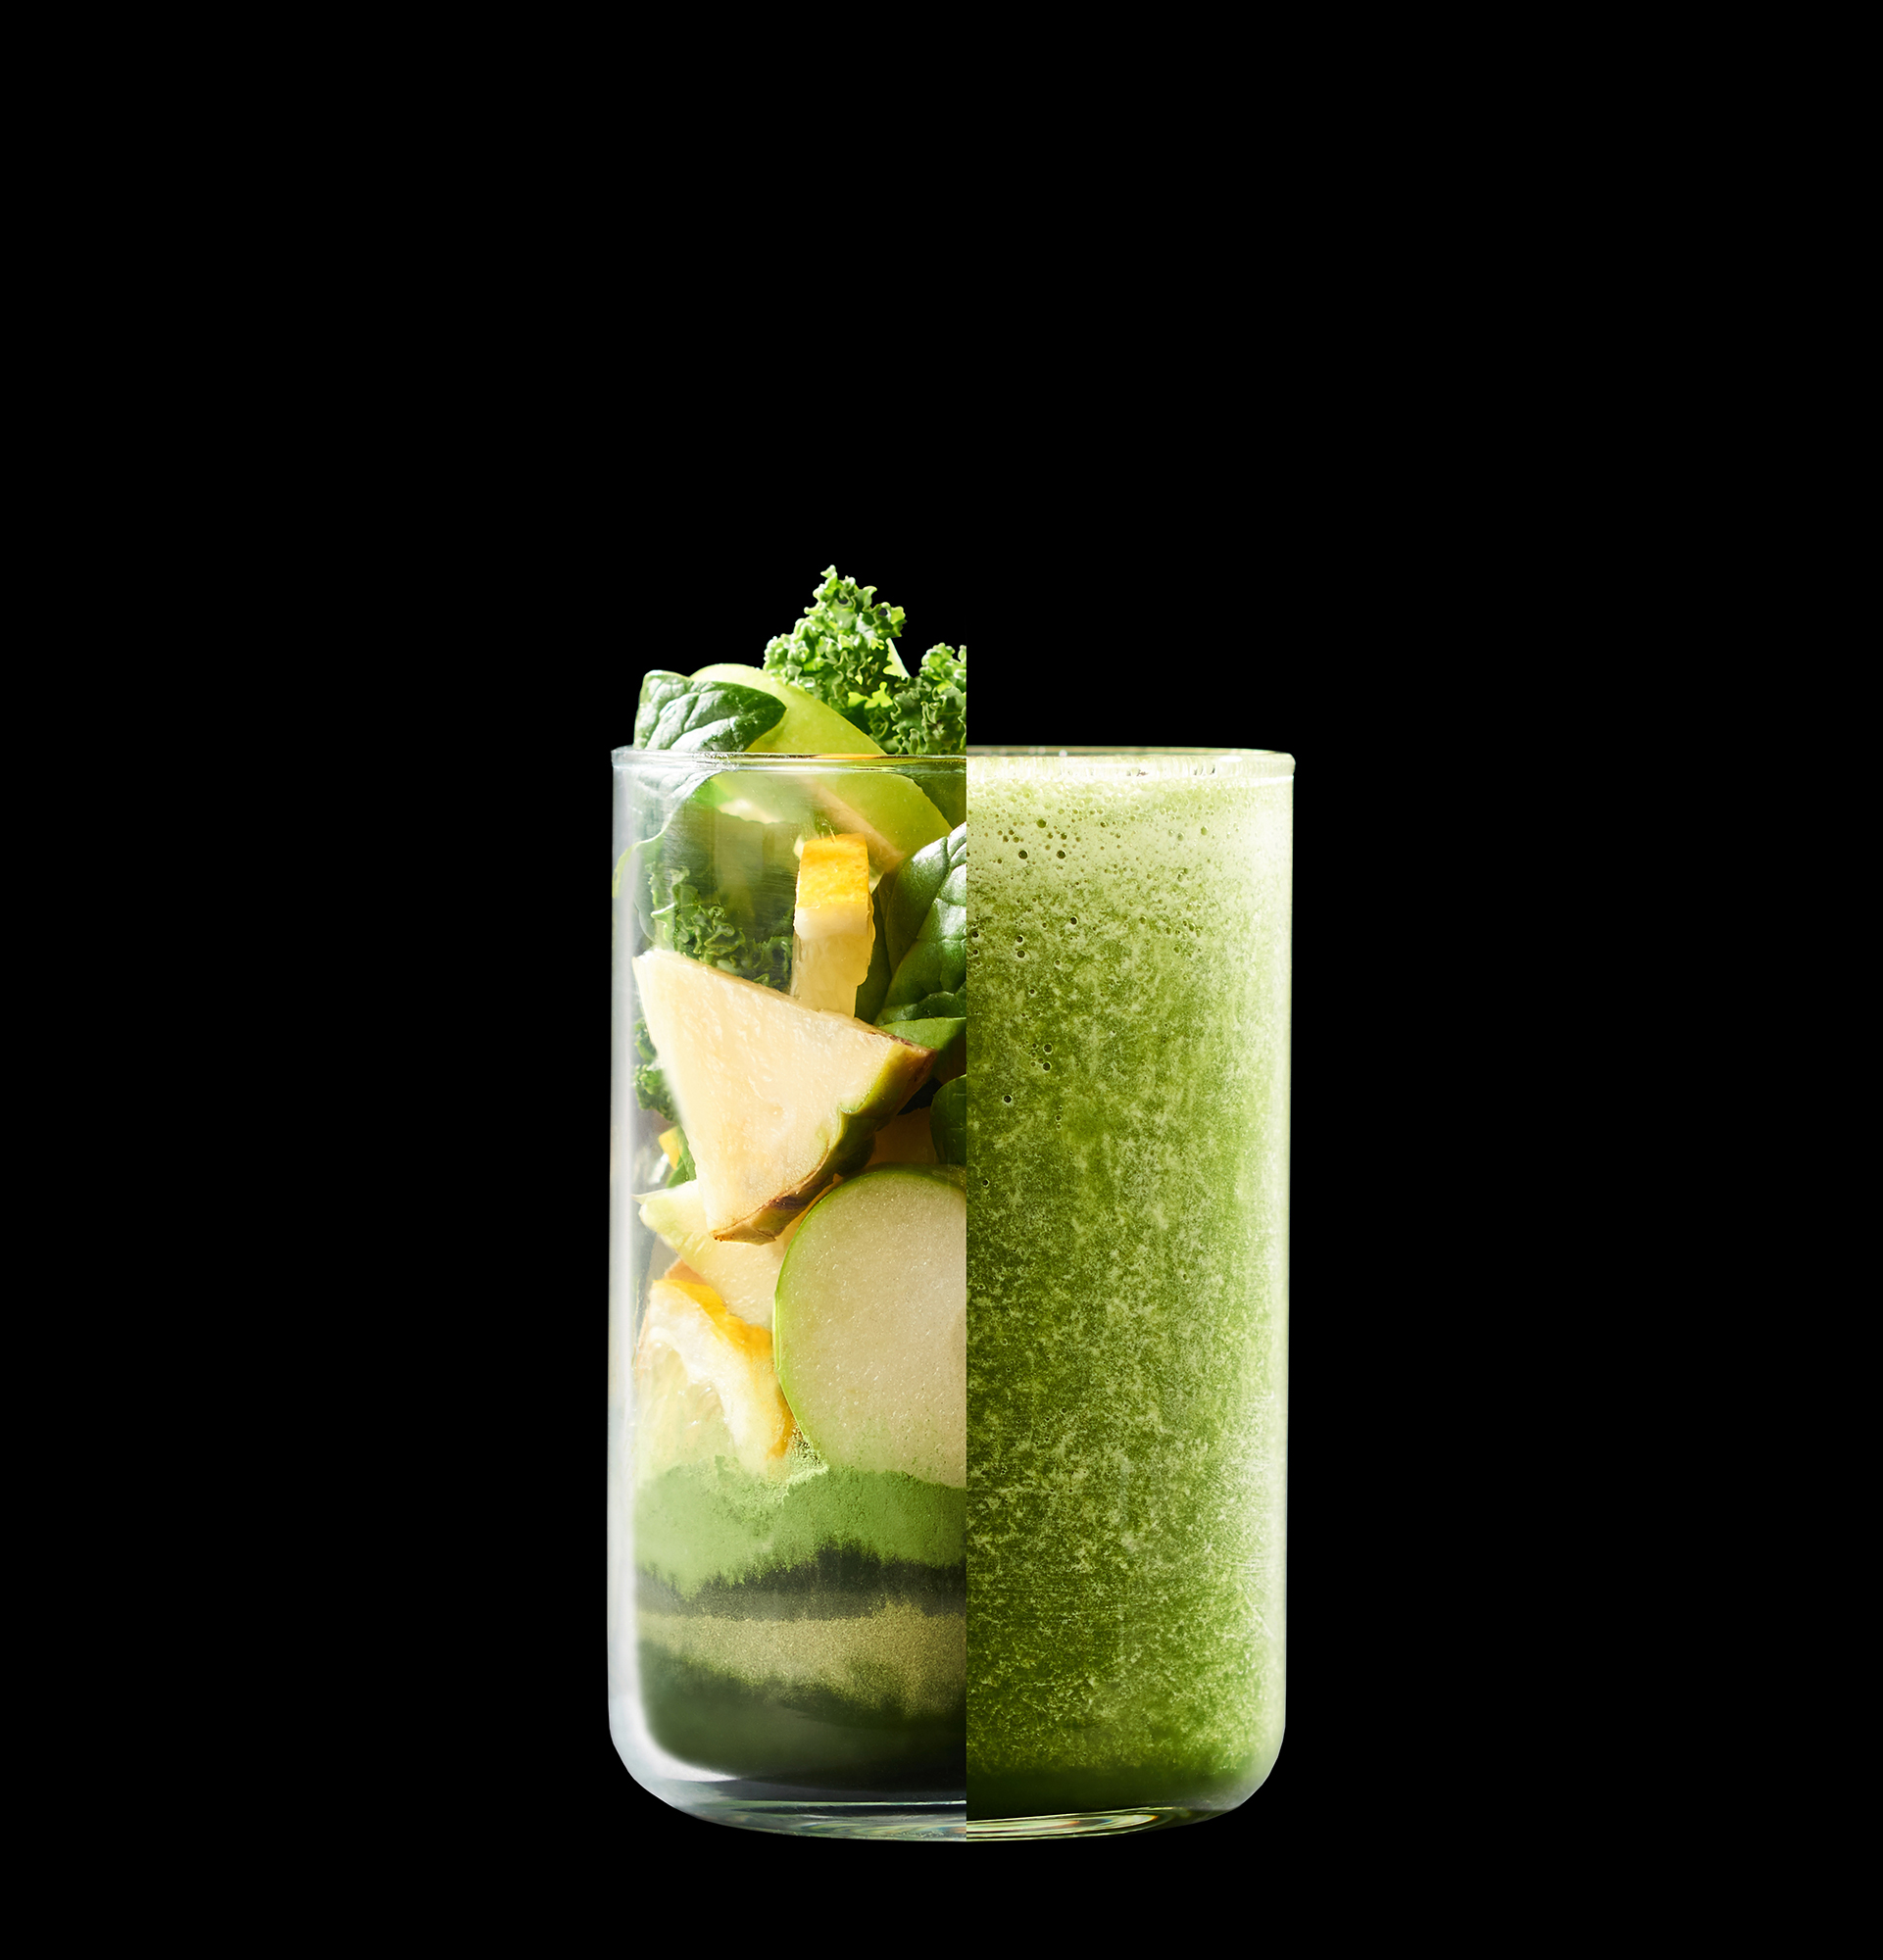 green smoothie drinks photography by Holly Pickering